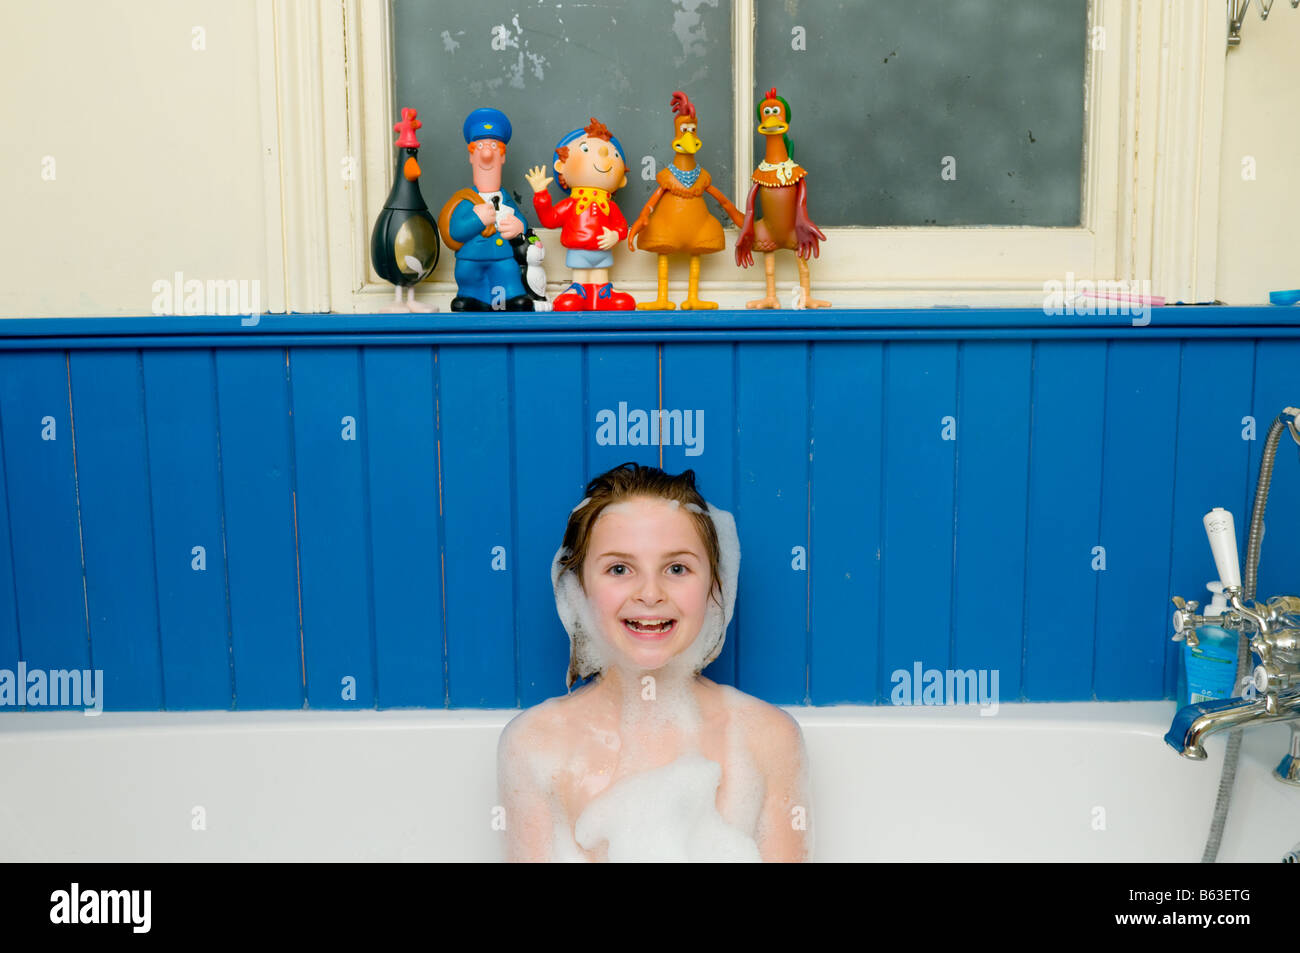 Ten year old girl in the bath looking happy smiling cheeky and cute with soapy bubbles like a beard around her face, - Stock Image